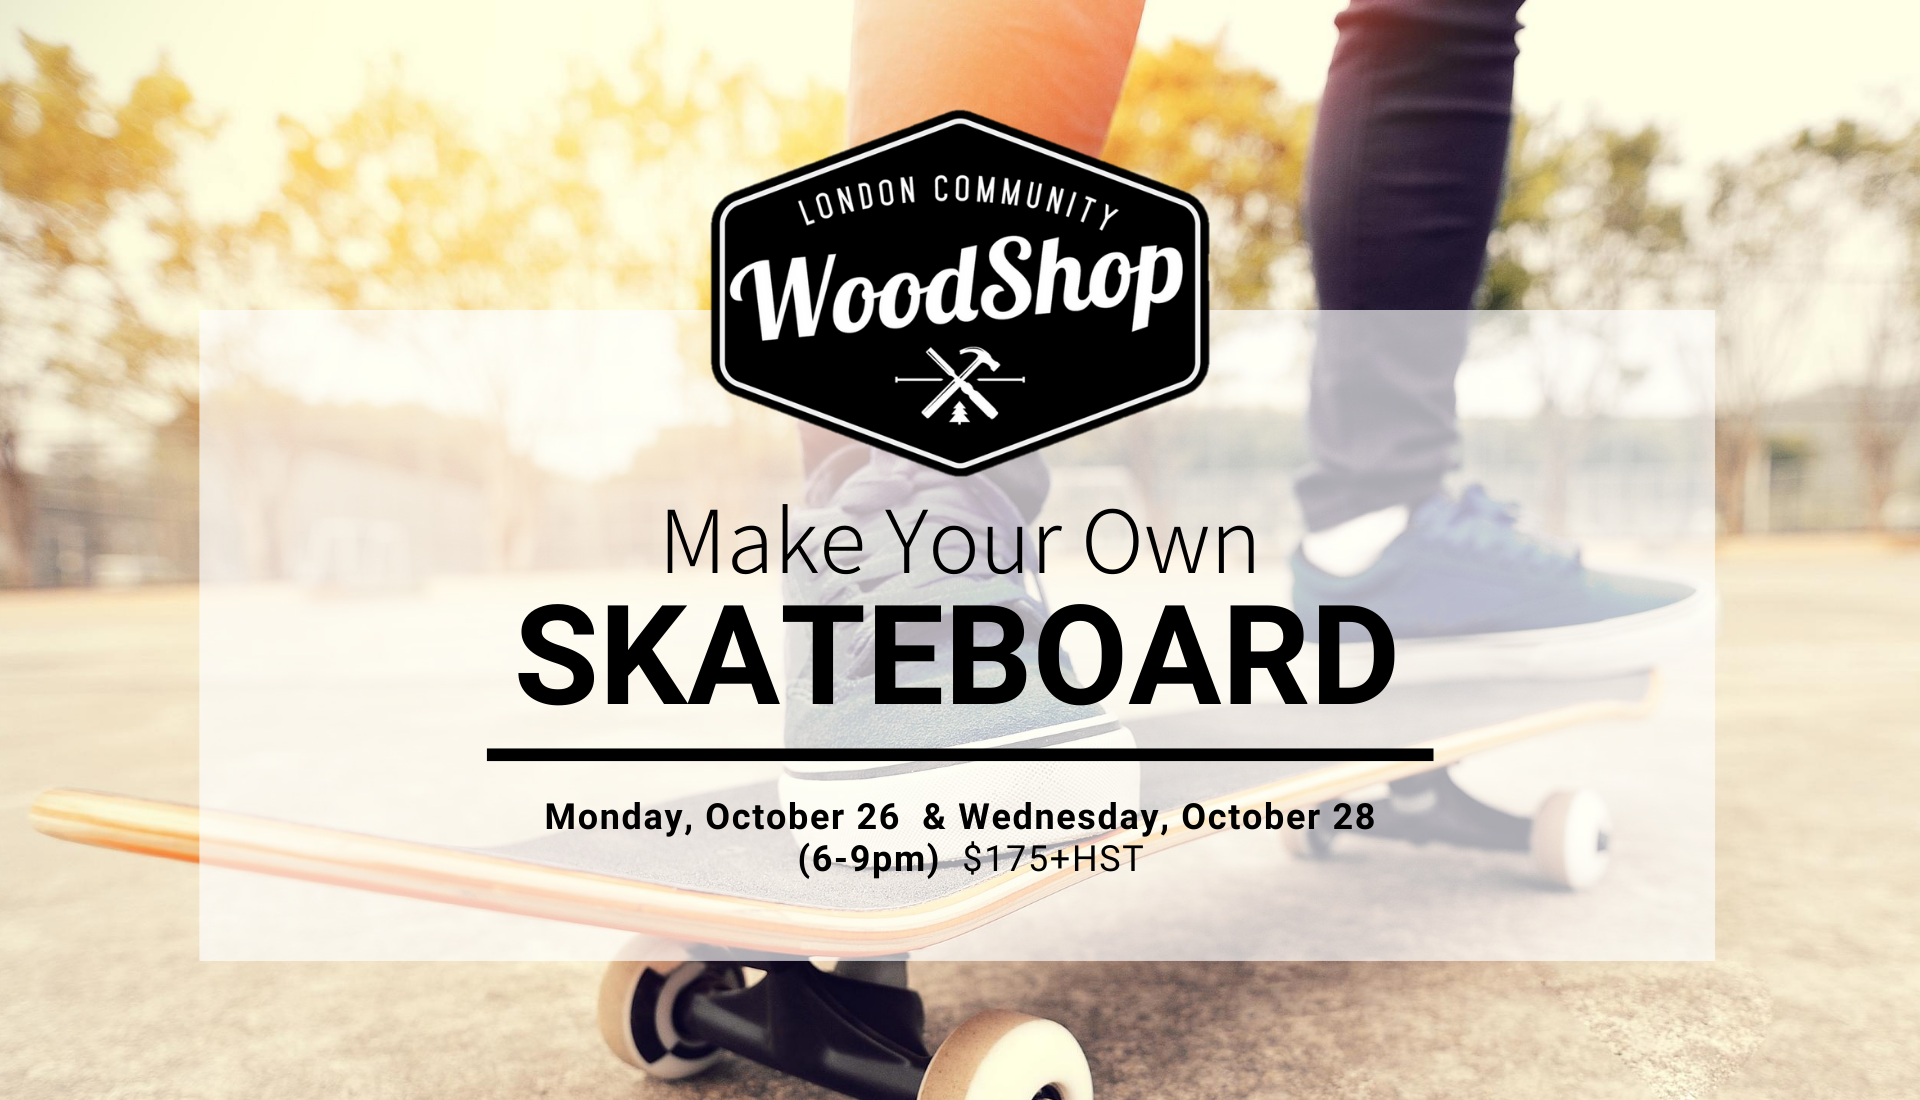 Skate Board Workshop: October 26 and 28 2020